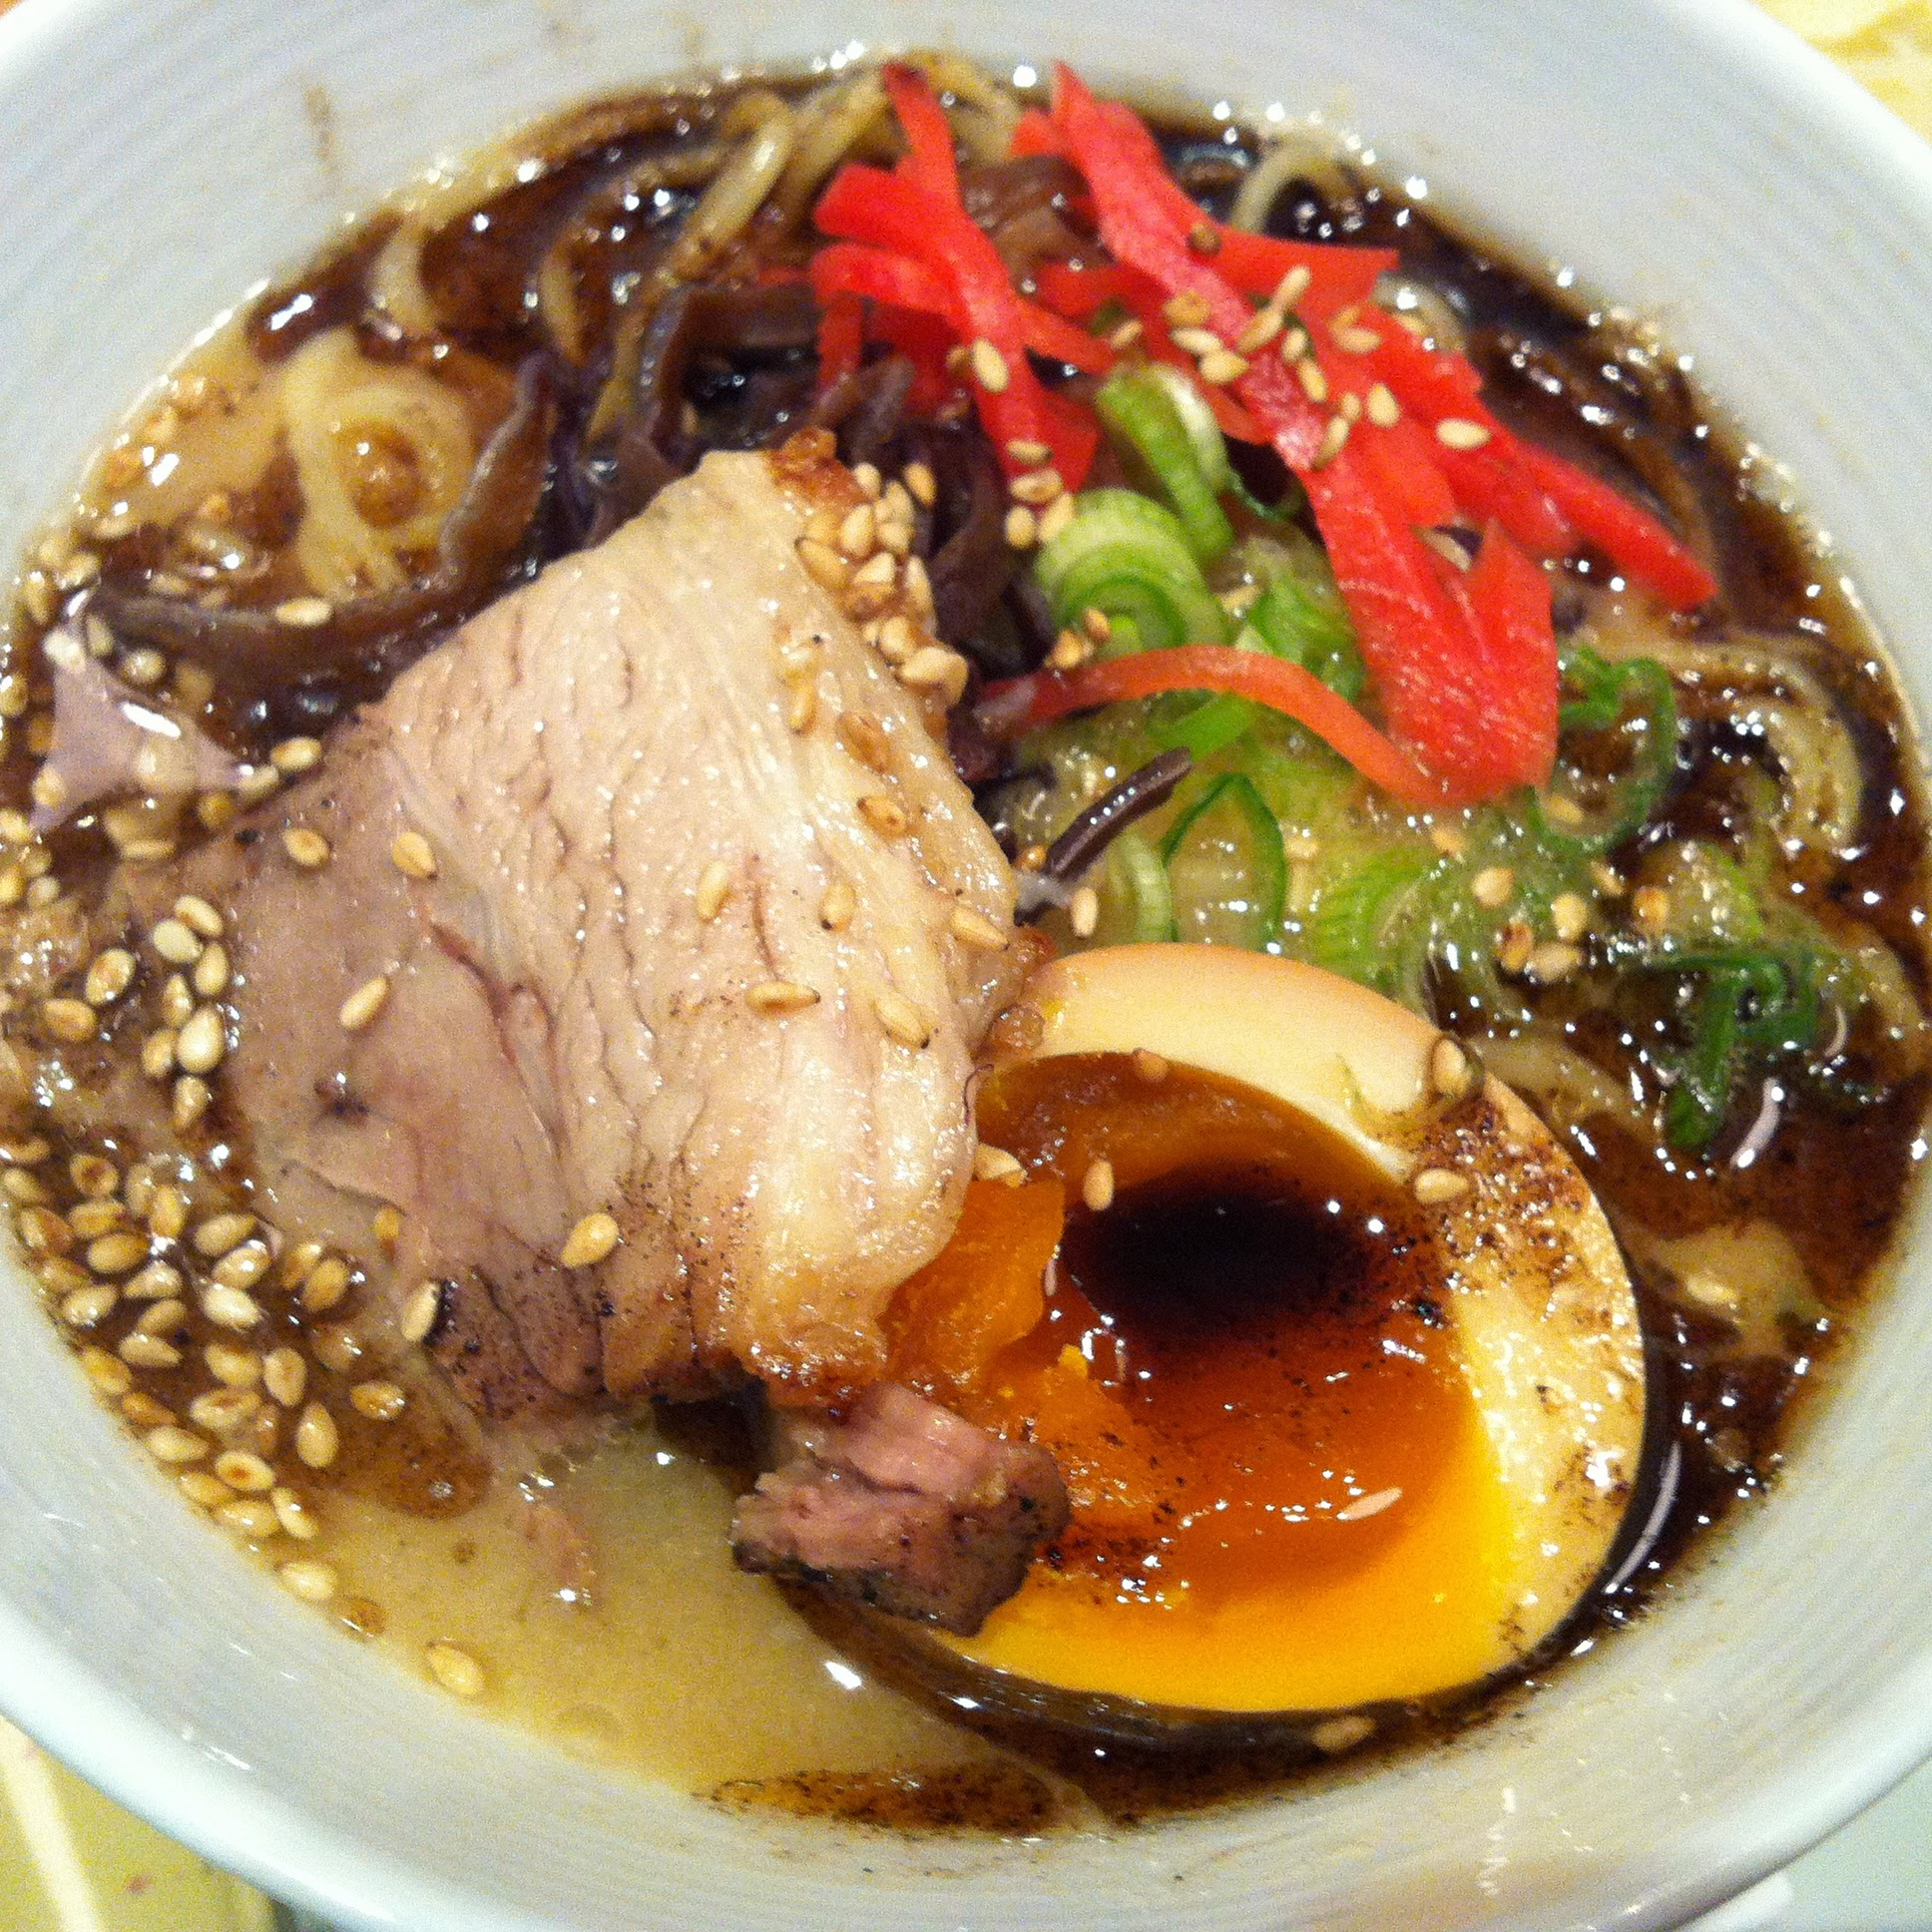 Miso Ramen with the addition of a smoked egg.